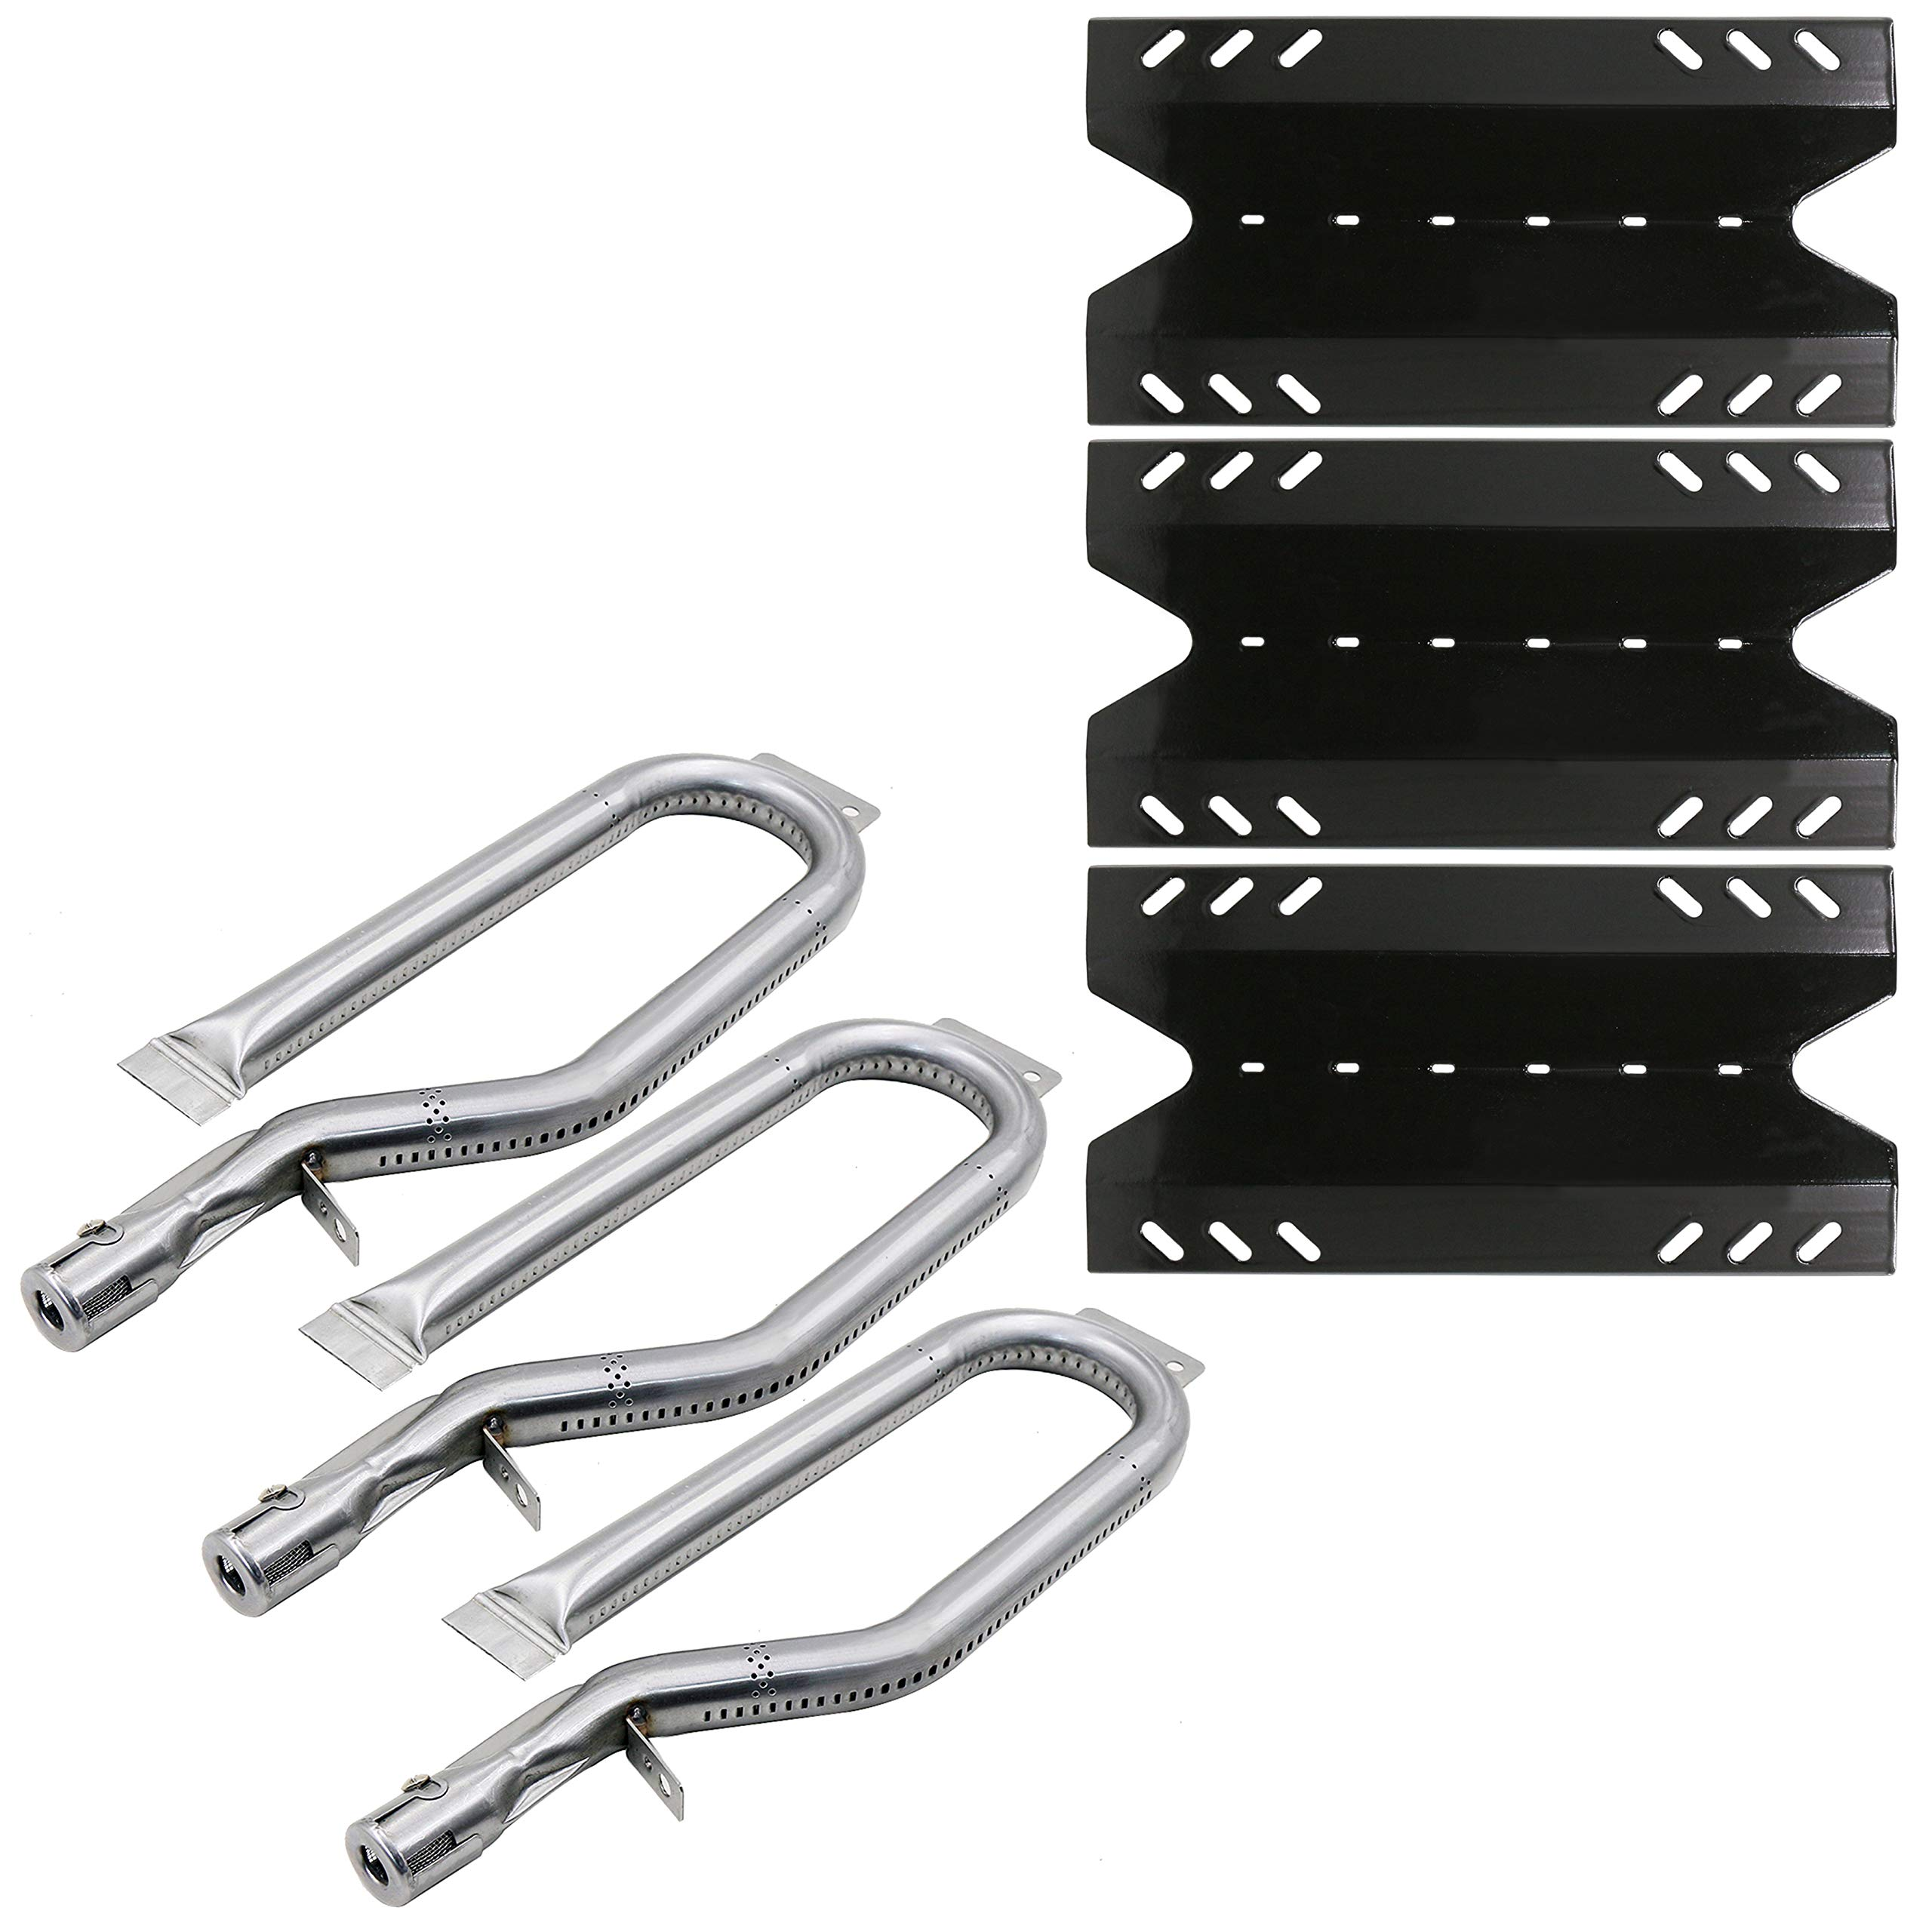 Stainless Steel Heat Plate with Gas Burner Tube for Outdoor Gourmet Grill Parts